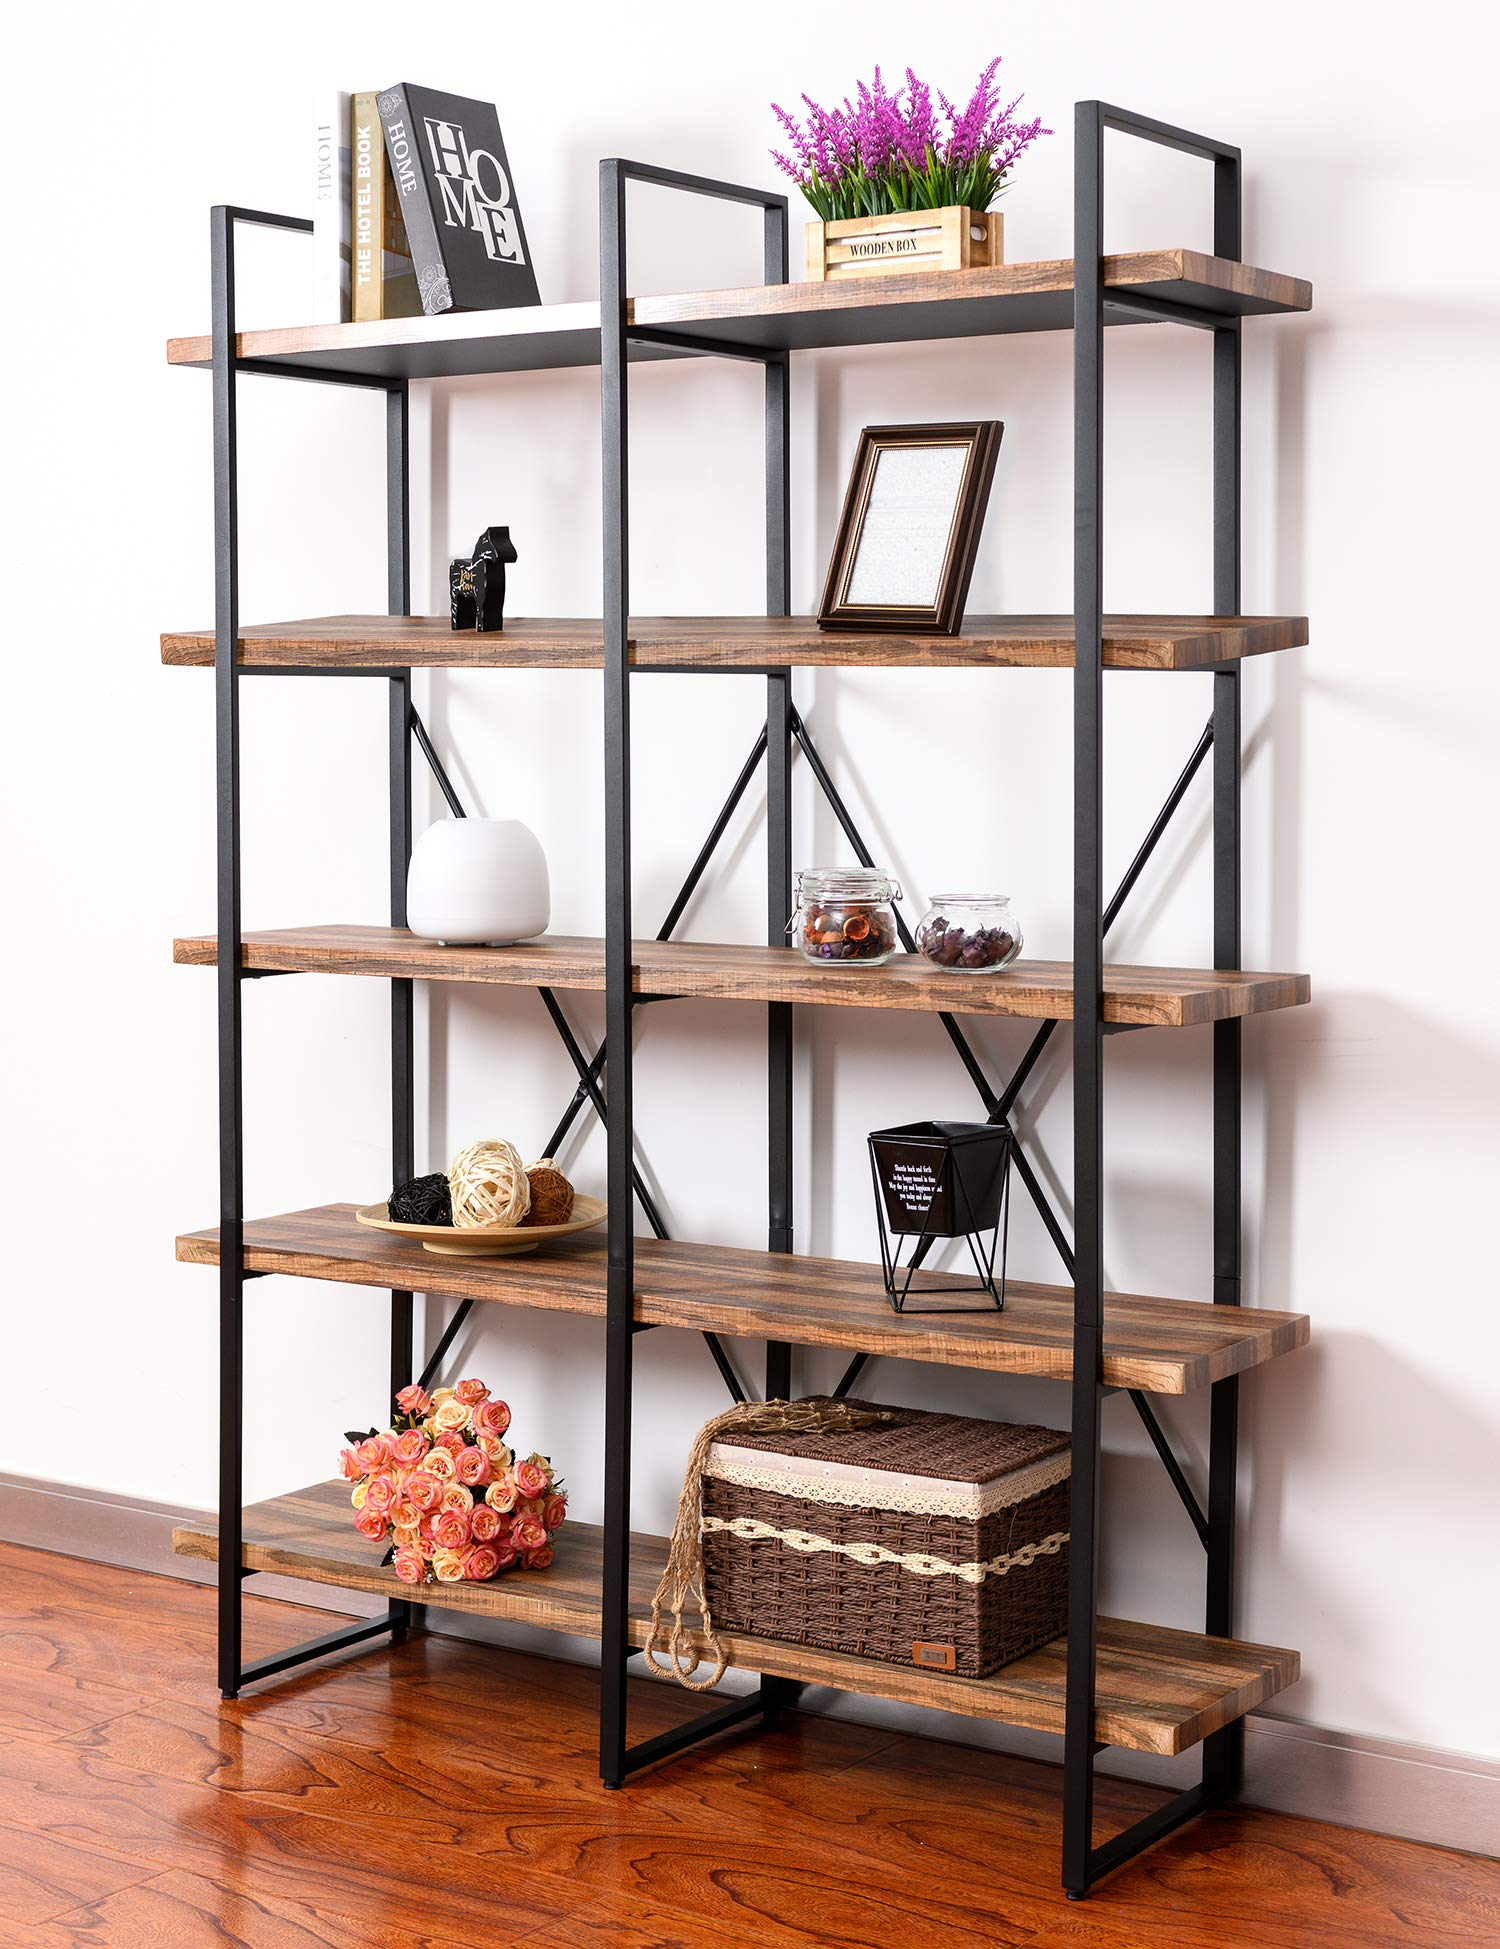 IRONCK Bookshelf, Double Wide 5-Tier Open Bookcase Vintage Industrial Large Shelves, Wood and Metal Etagere Bookshelves, for Home Decor Display, Office Furniture by IRONCK (Image #8)